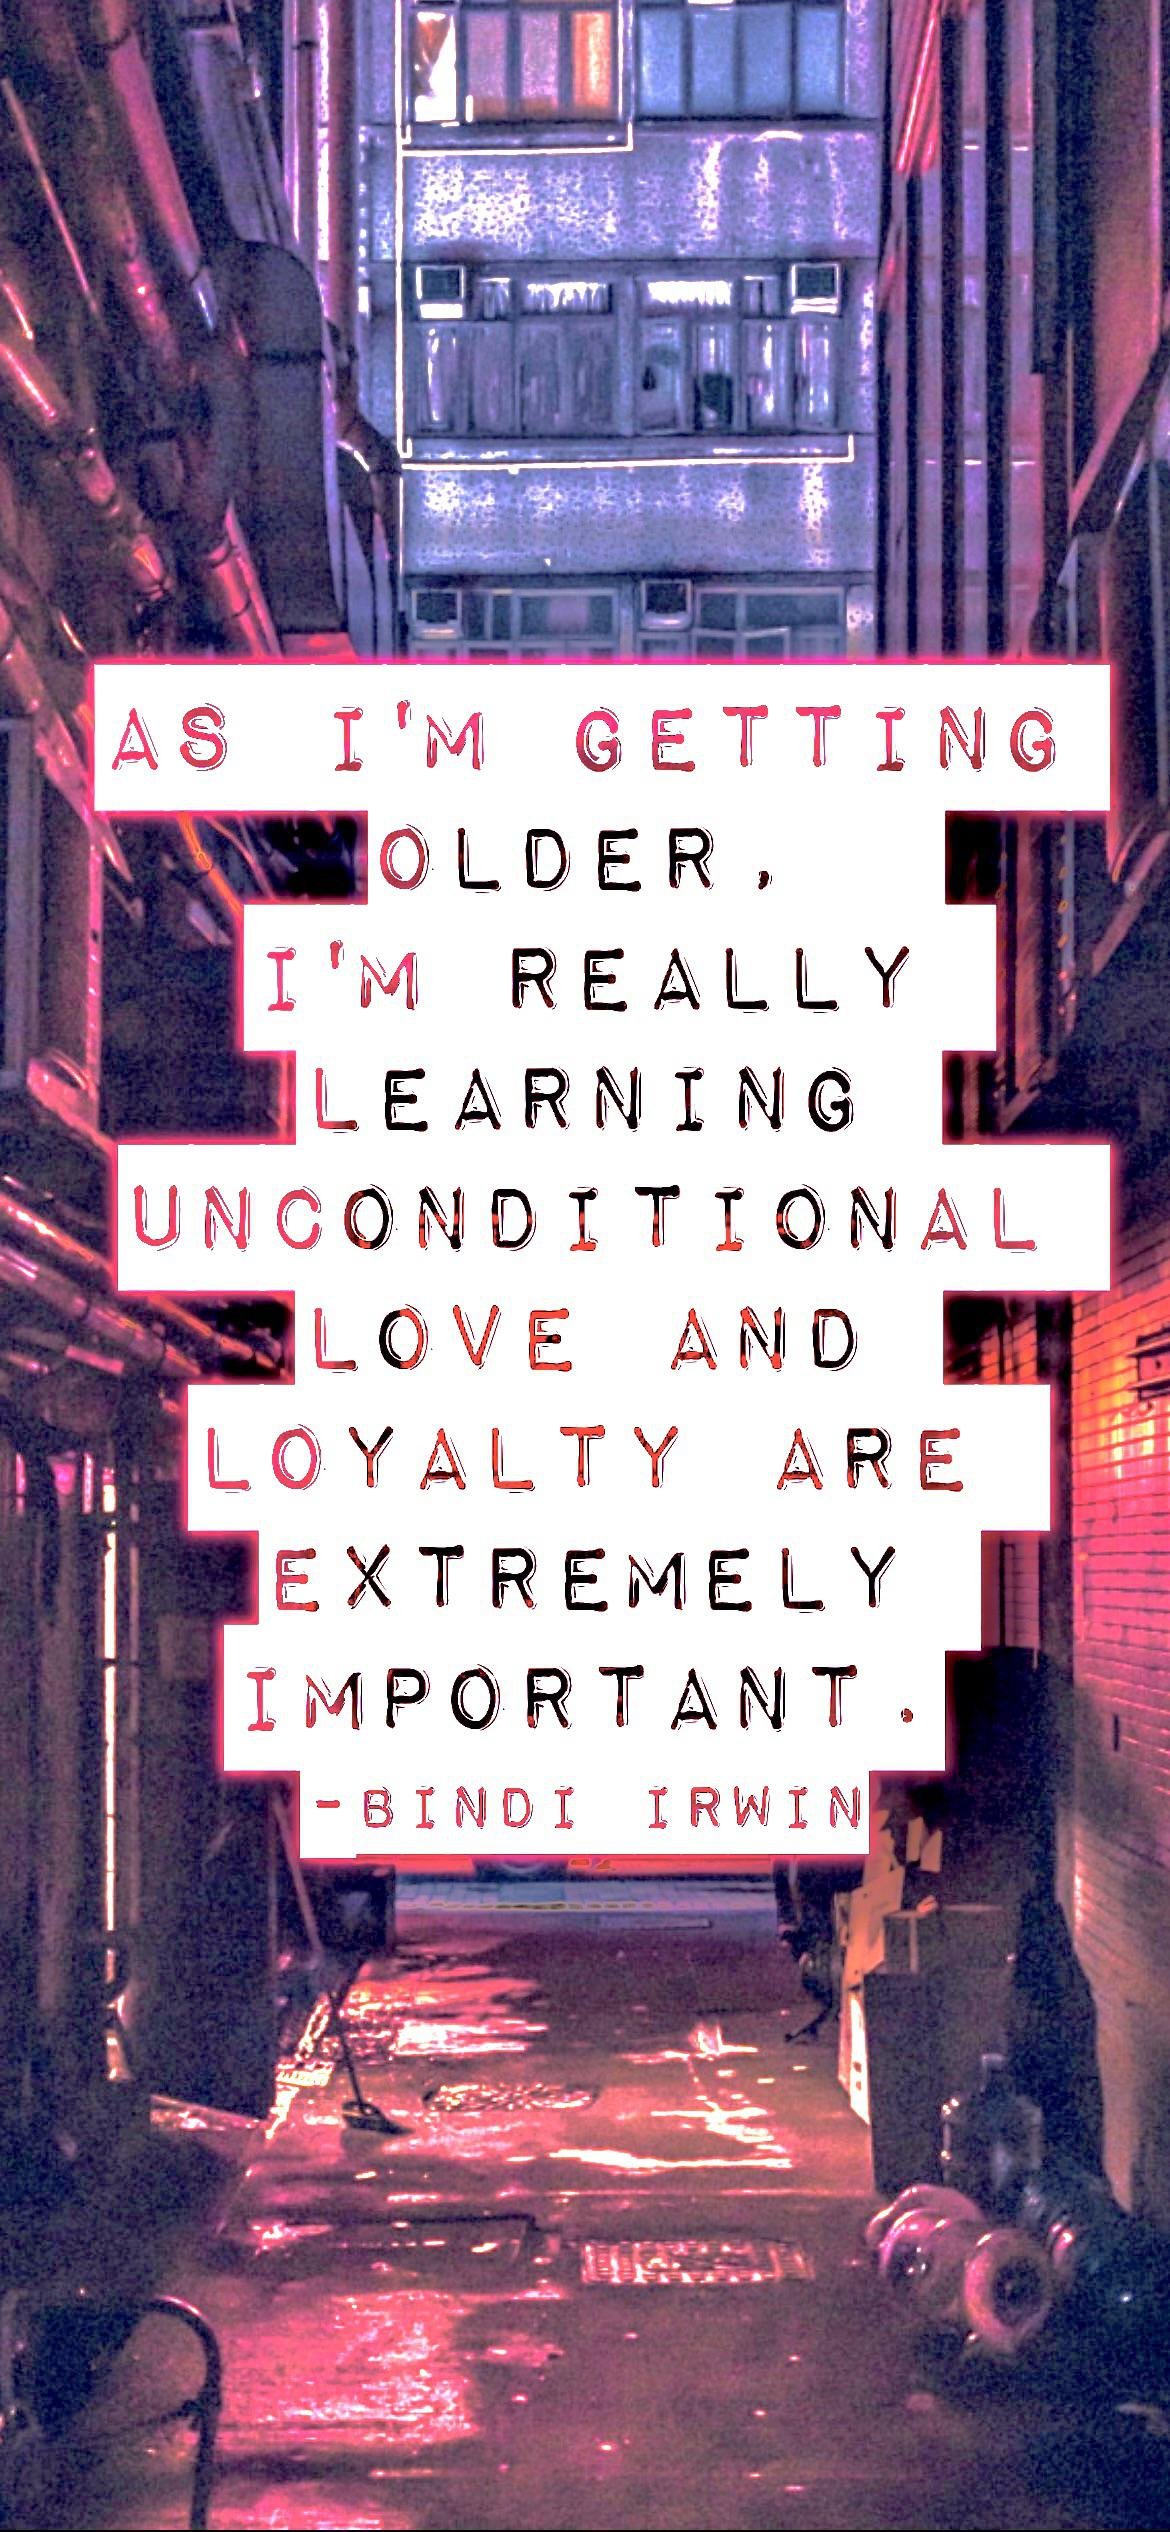 As I'm getting older, I'm really learning unconditional love and loyalty are extremely important. -Bindi Irwin [2532 x 1170p]